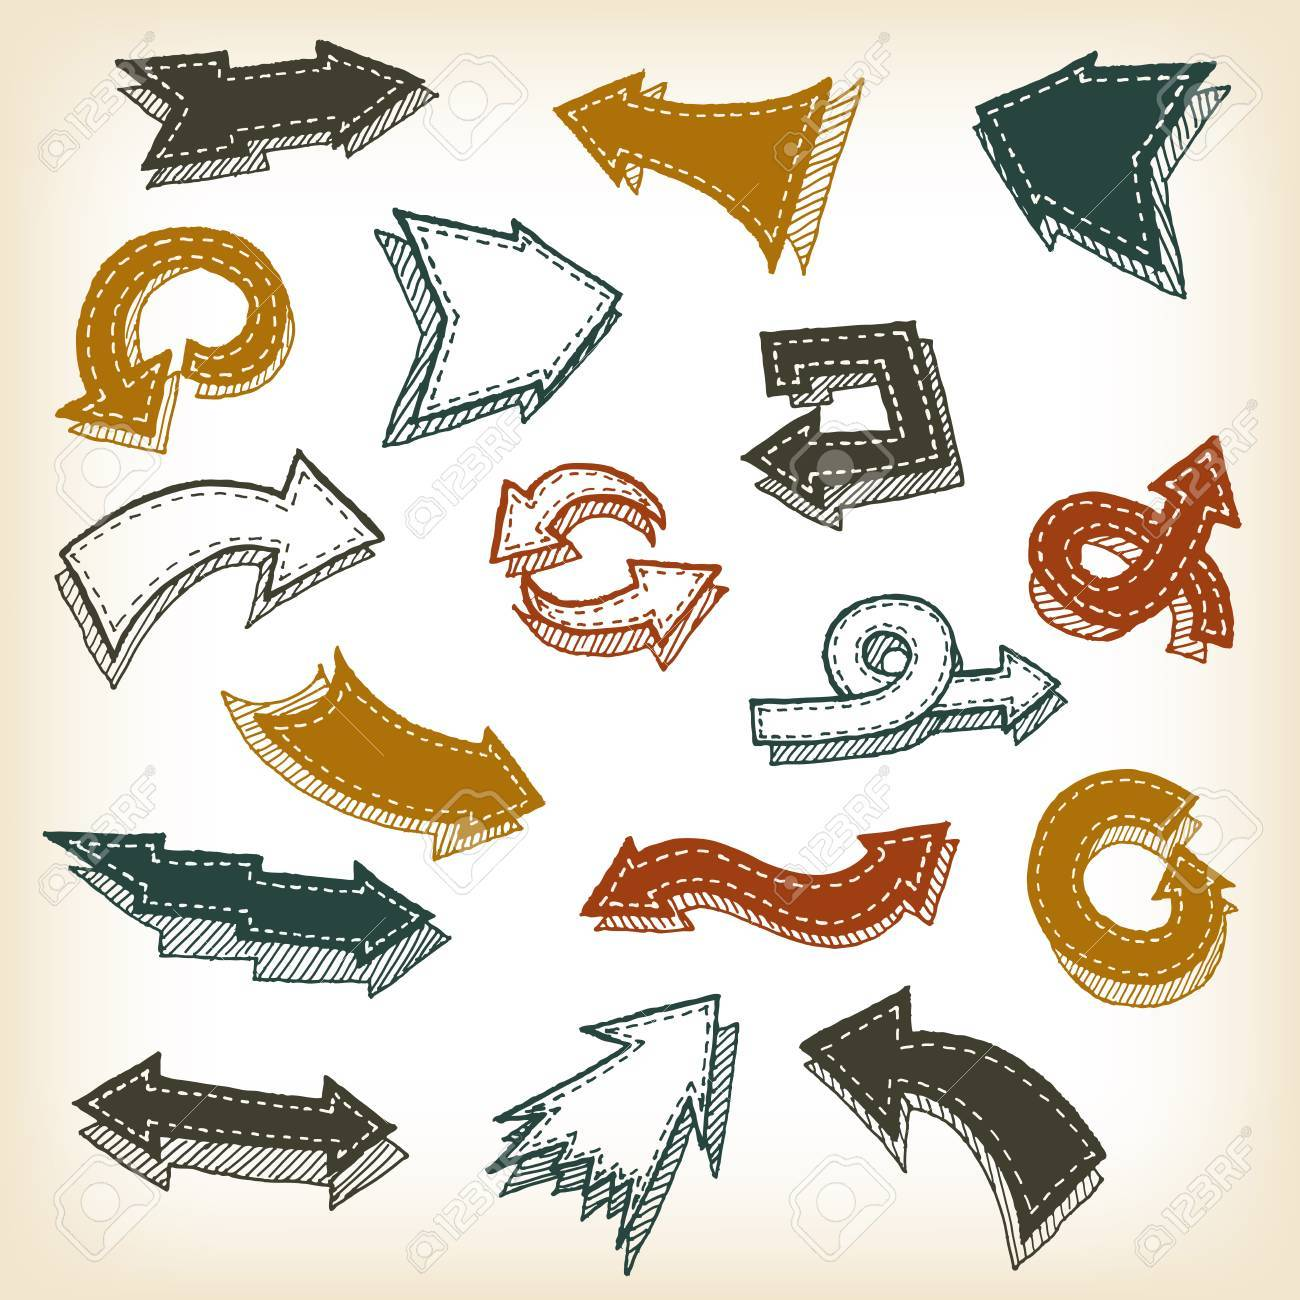 Illustration Of A Set Doodle Hand Drawn Arrows And Signs On Vintage Background Stock Vector